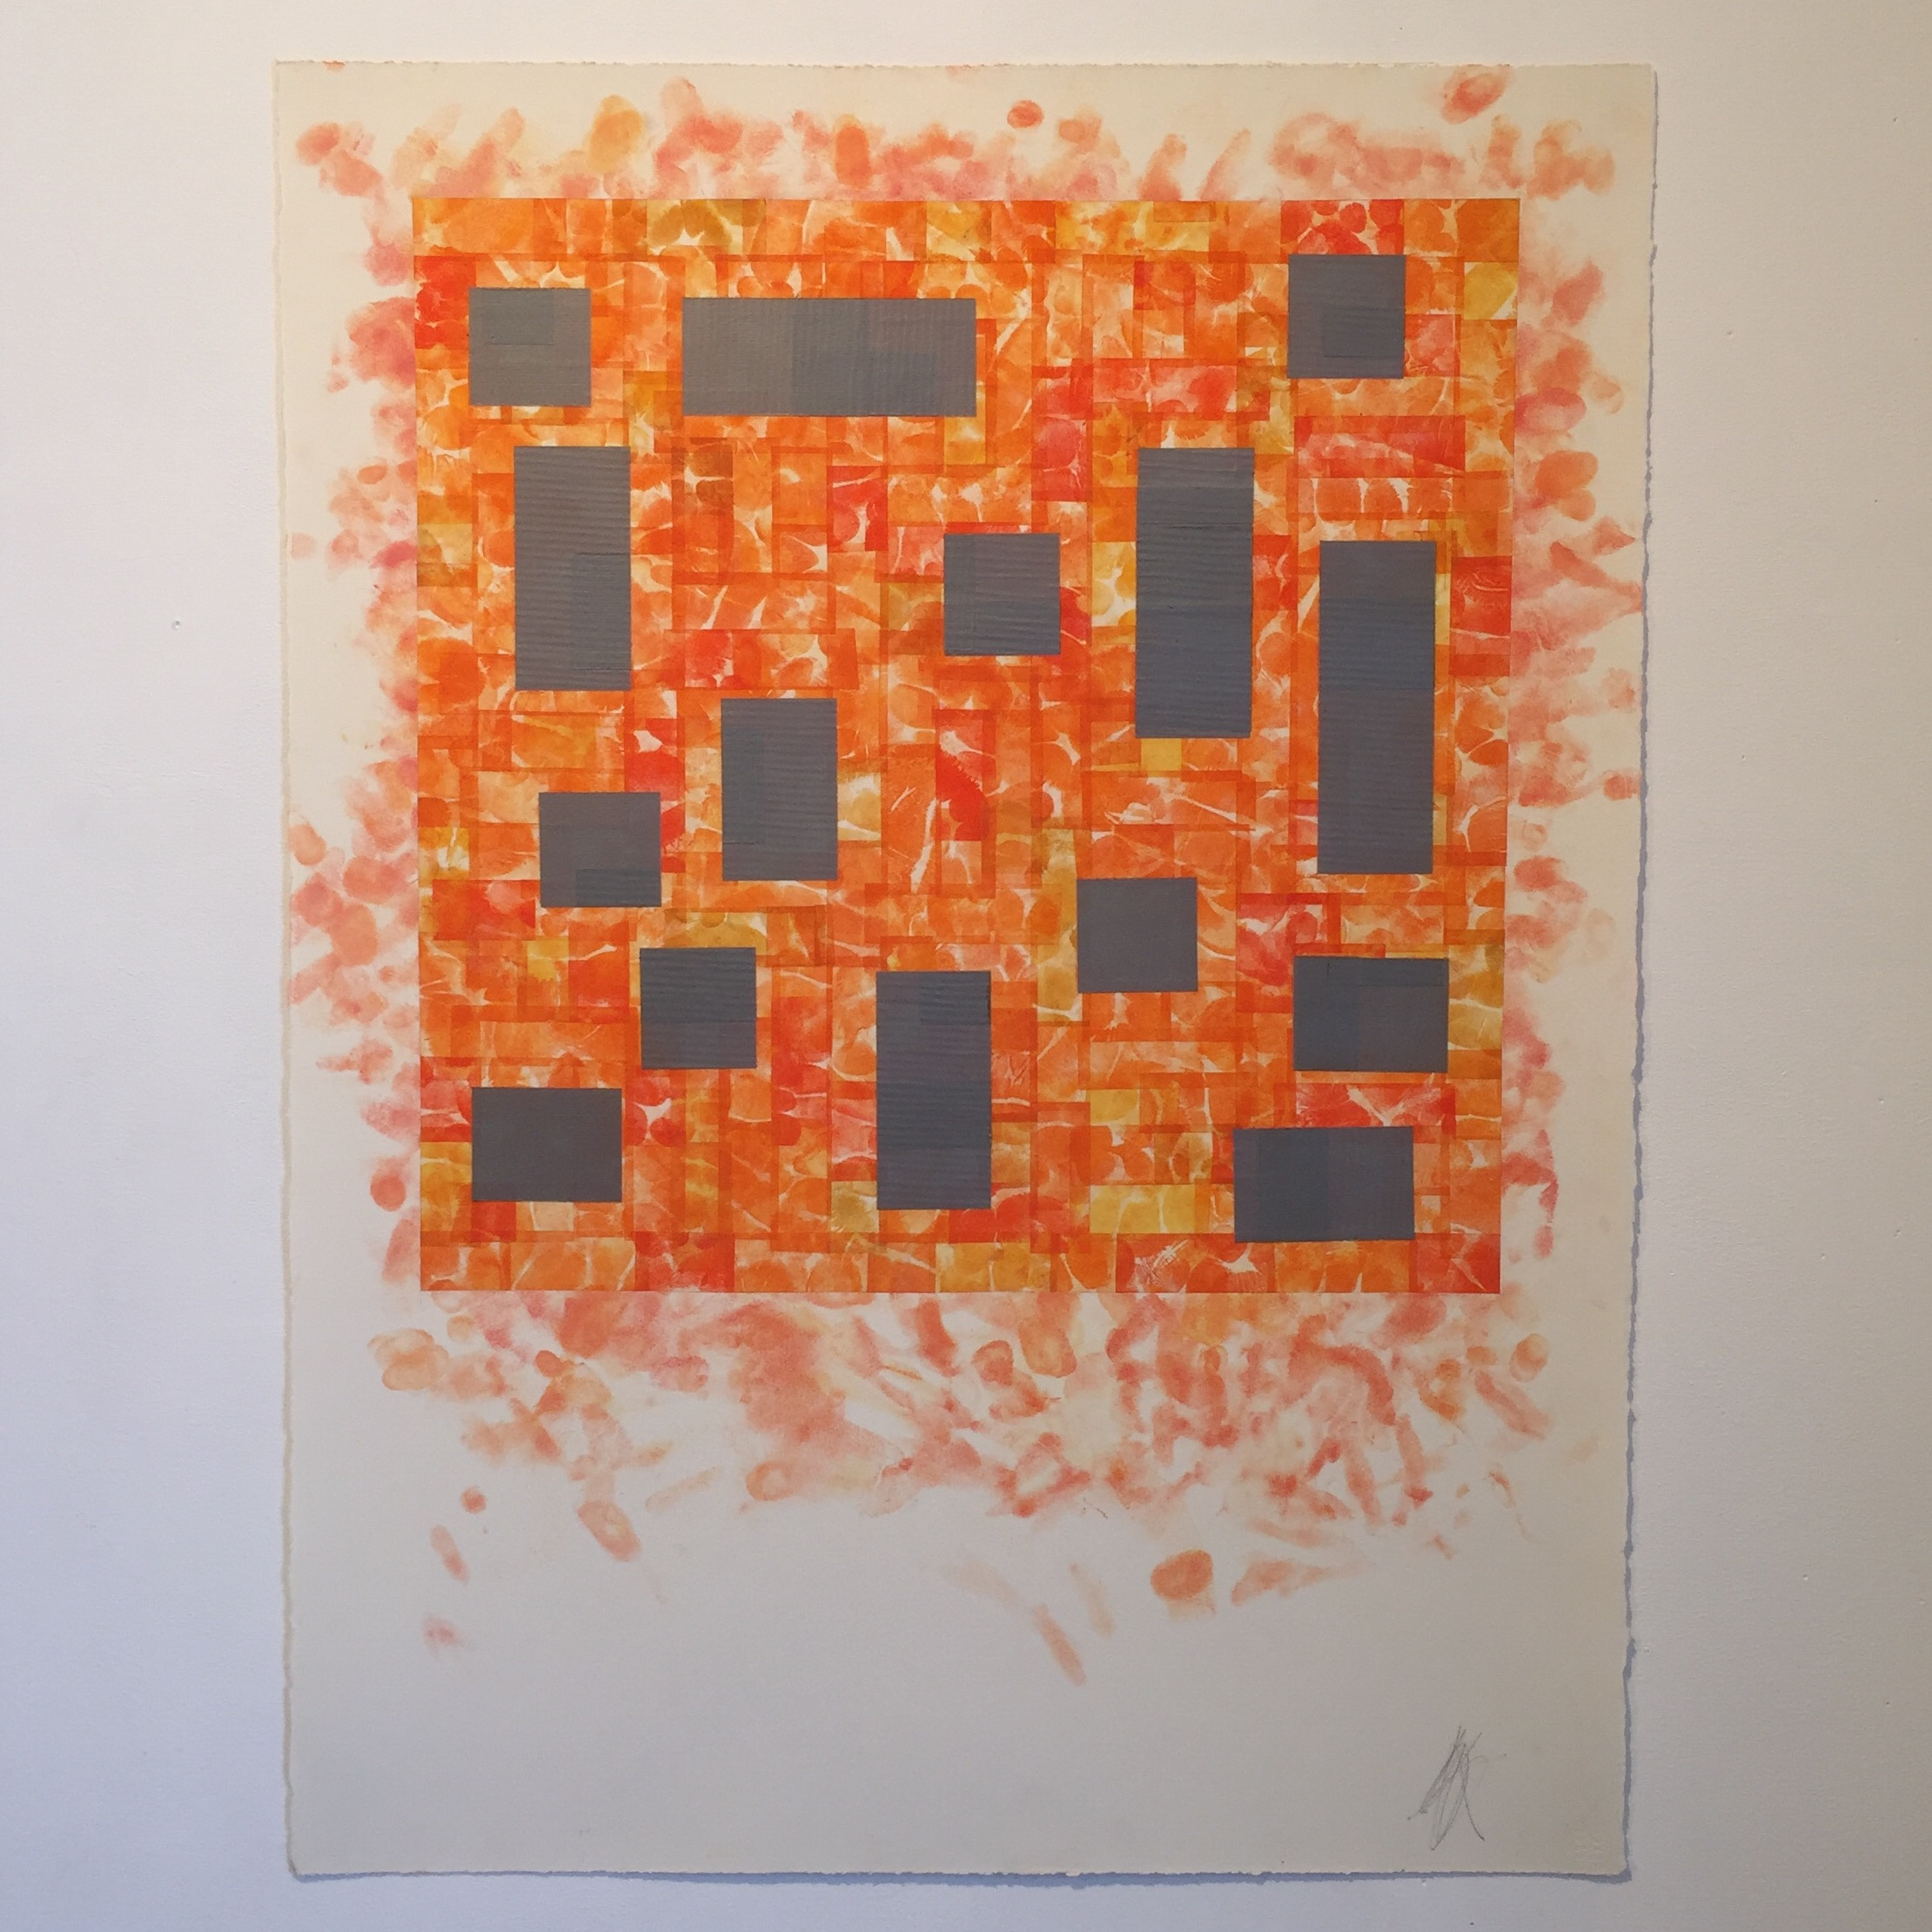 Untitled Drawing (orange with duct tape), 2019